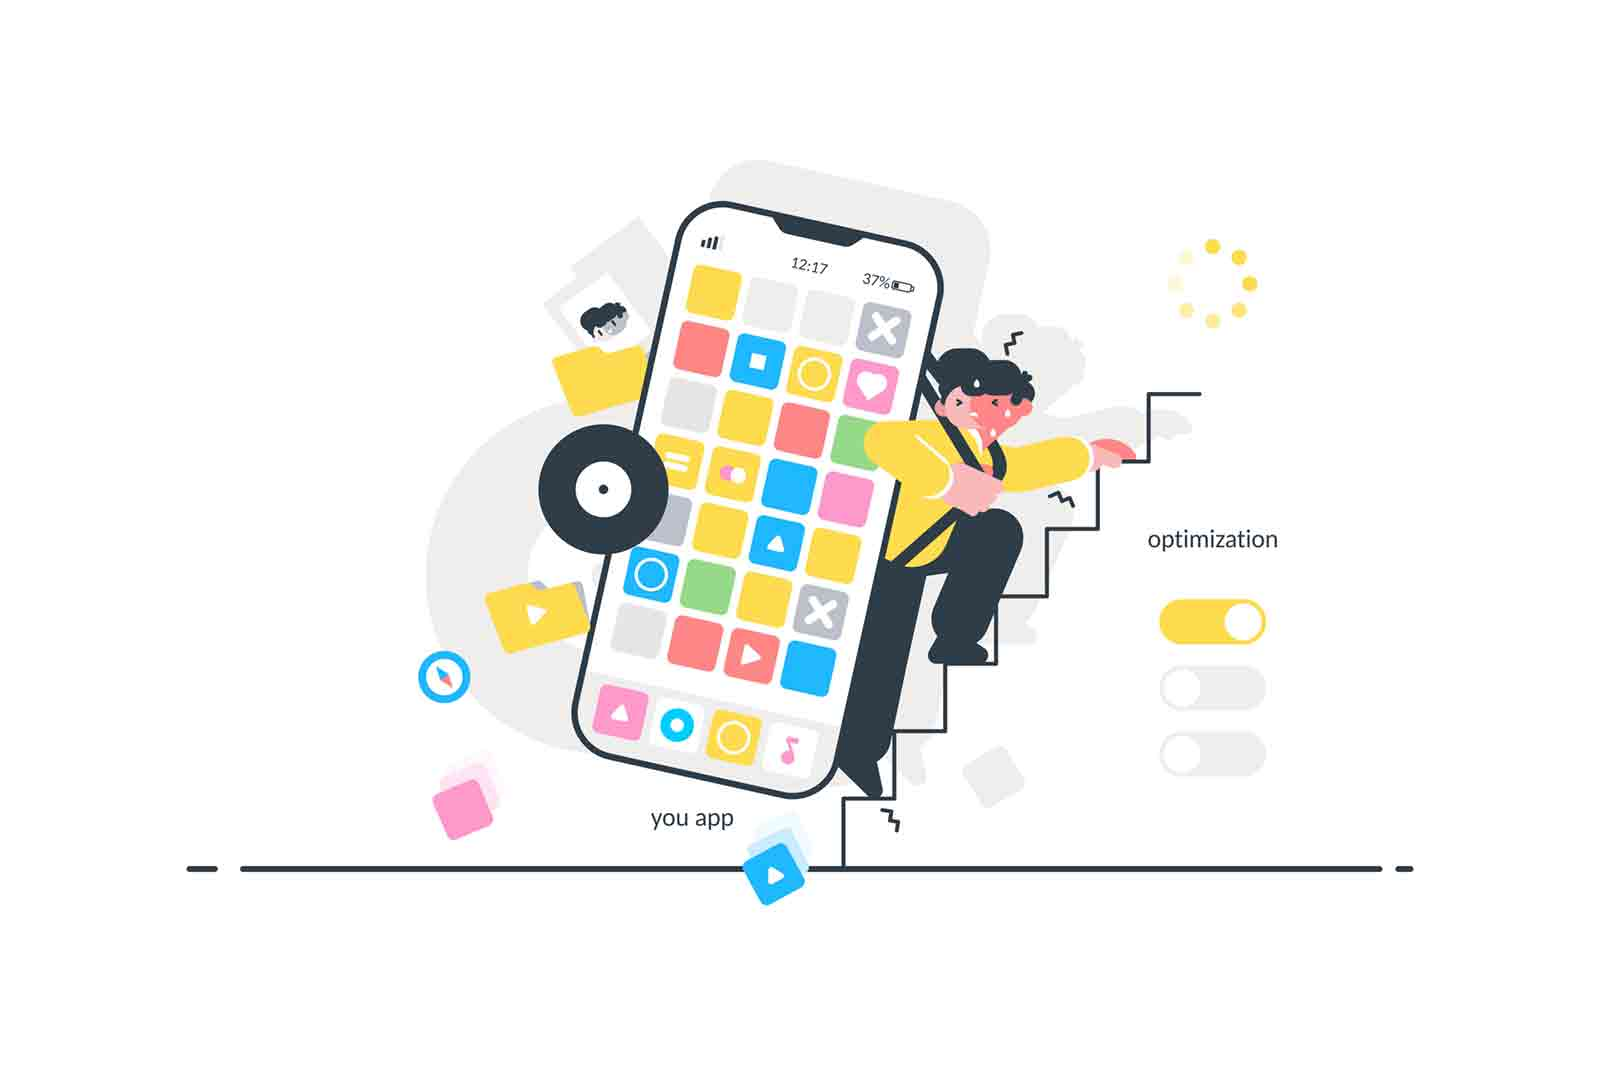 Heavy modern smartphone vector illustration. Guy climbing stairs and carrying on back big cellphone flat style design. Programs and apps icons. Optimization concept